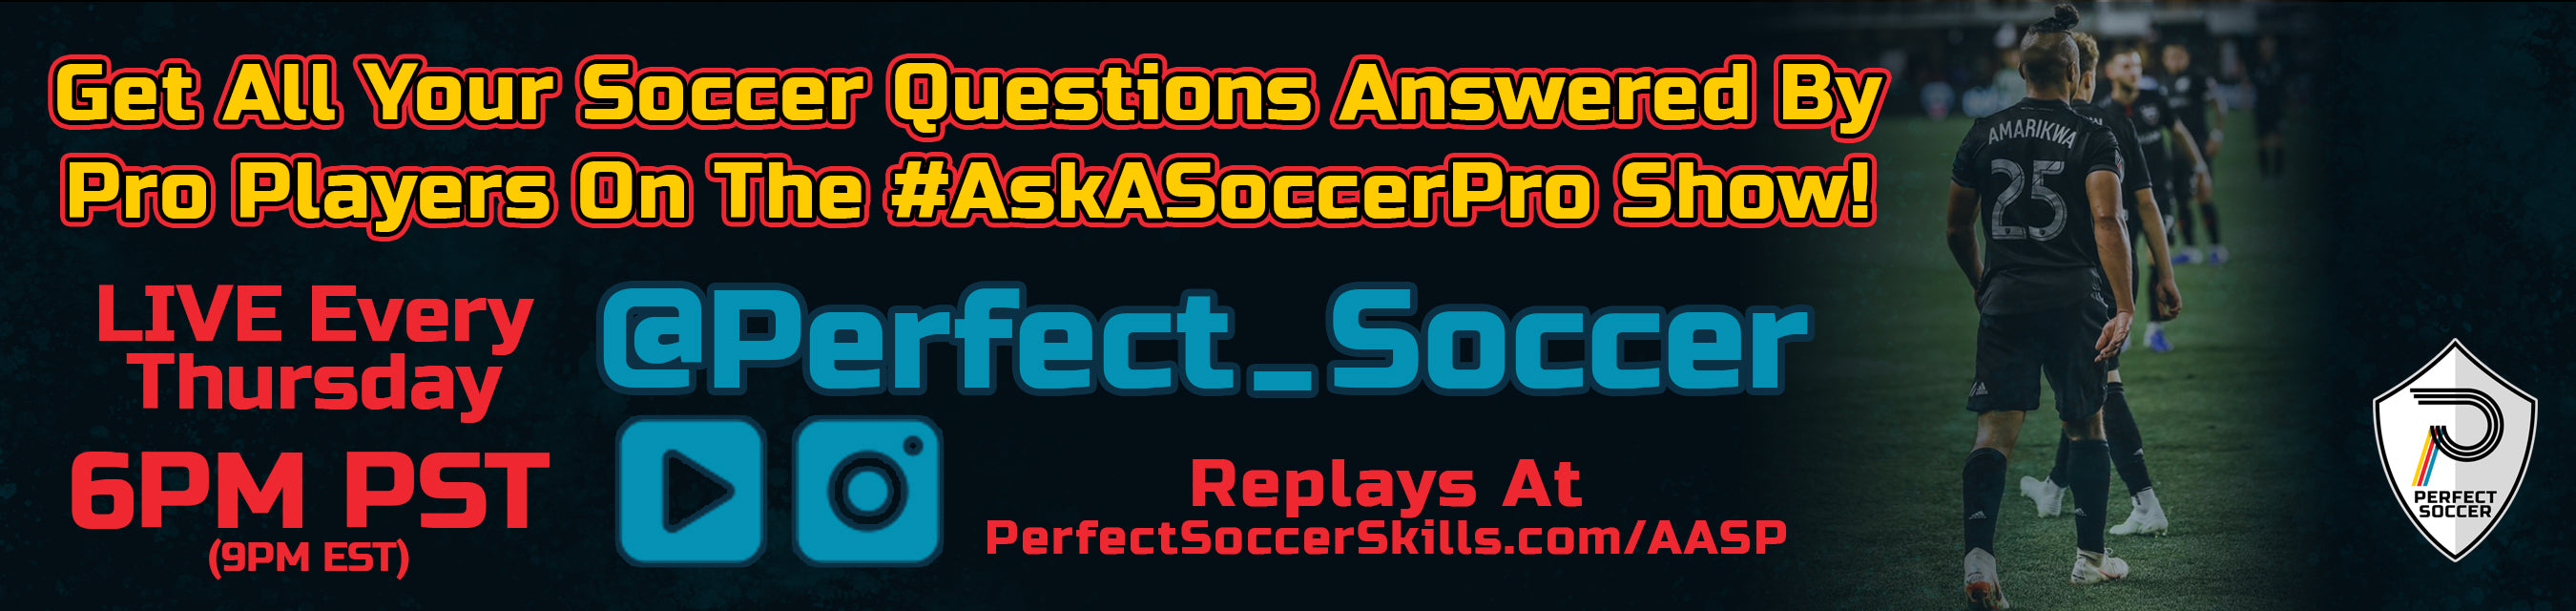 The #AskASoccerPro Show